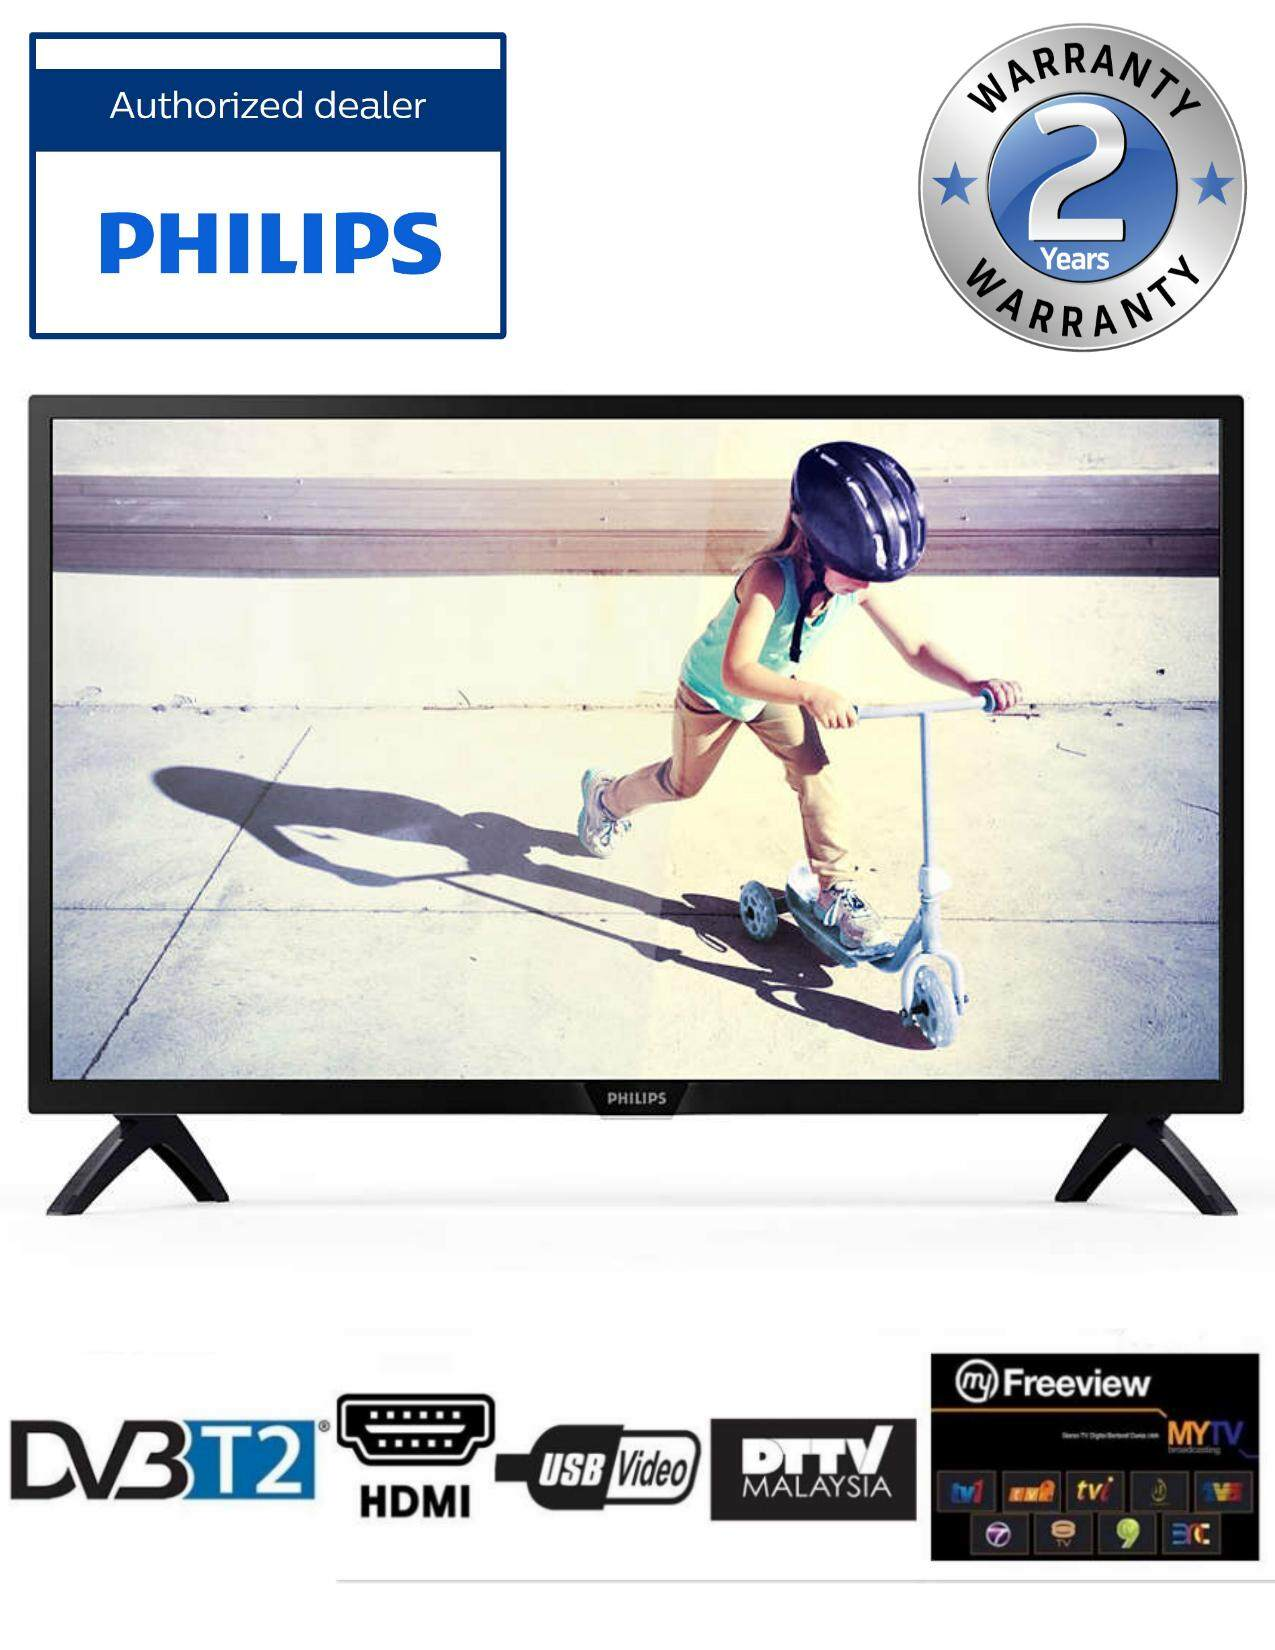 (AUTHORISED DEALER) PHILIPS 43PFT4082S/98 43 DVB-T/T2 FULL HD LED TV DTTV IDTV MYTV MYFREEVIEW SUPPORTED (Model:43PFT4082)